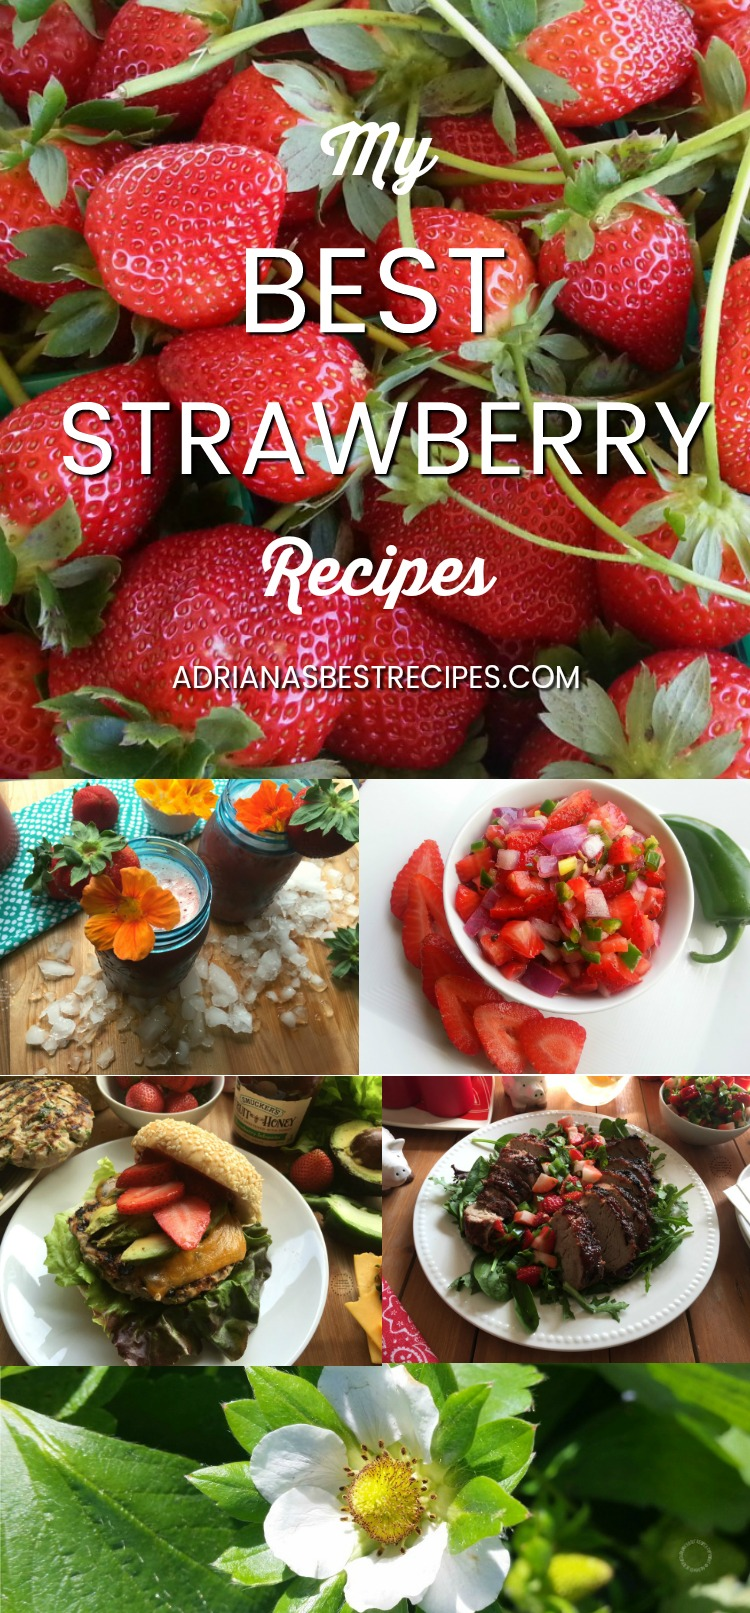 My Best Strawberry Recipes